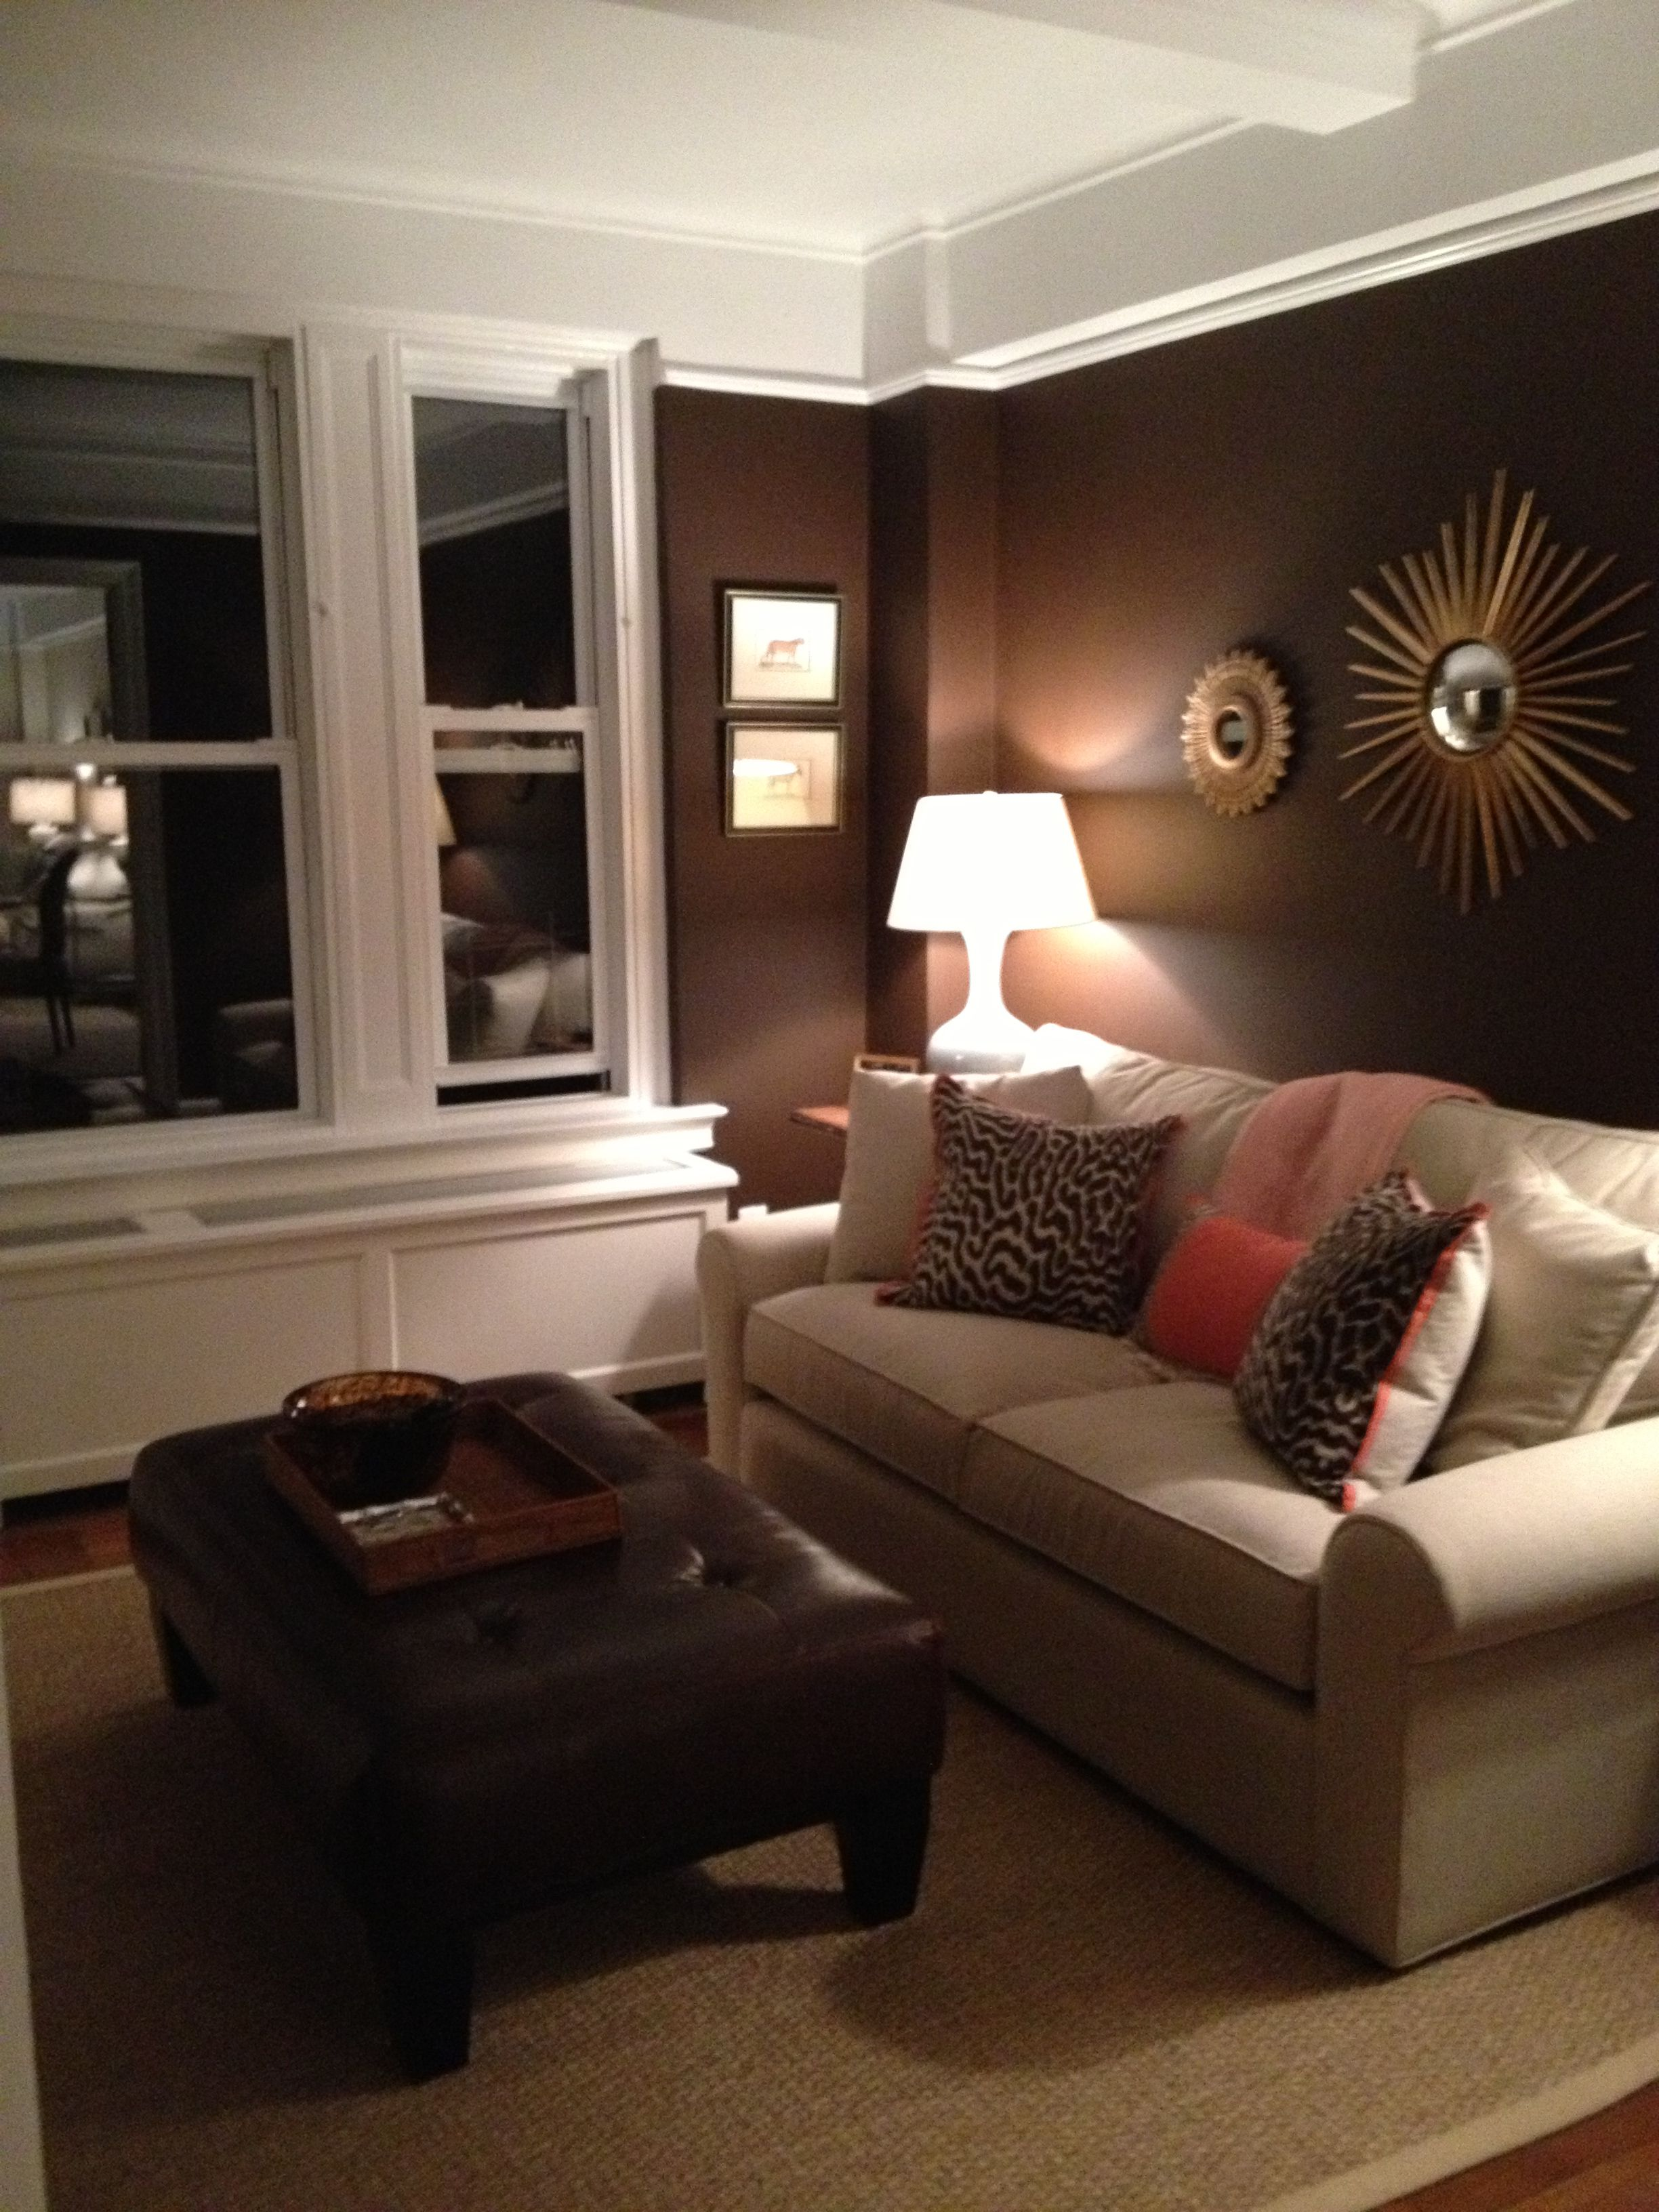 Den Room: Right When You Walk Downstairs. I Love The Dark Colors